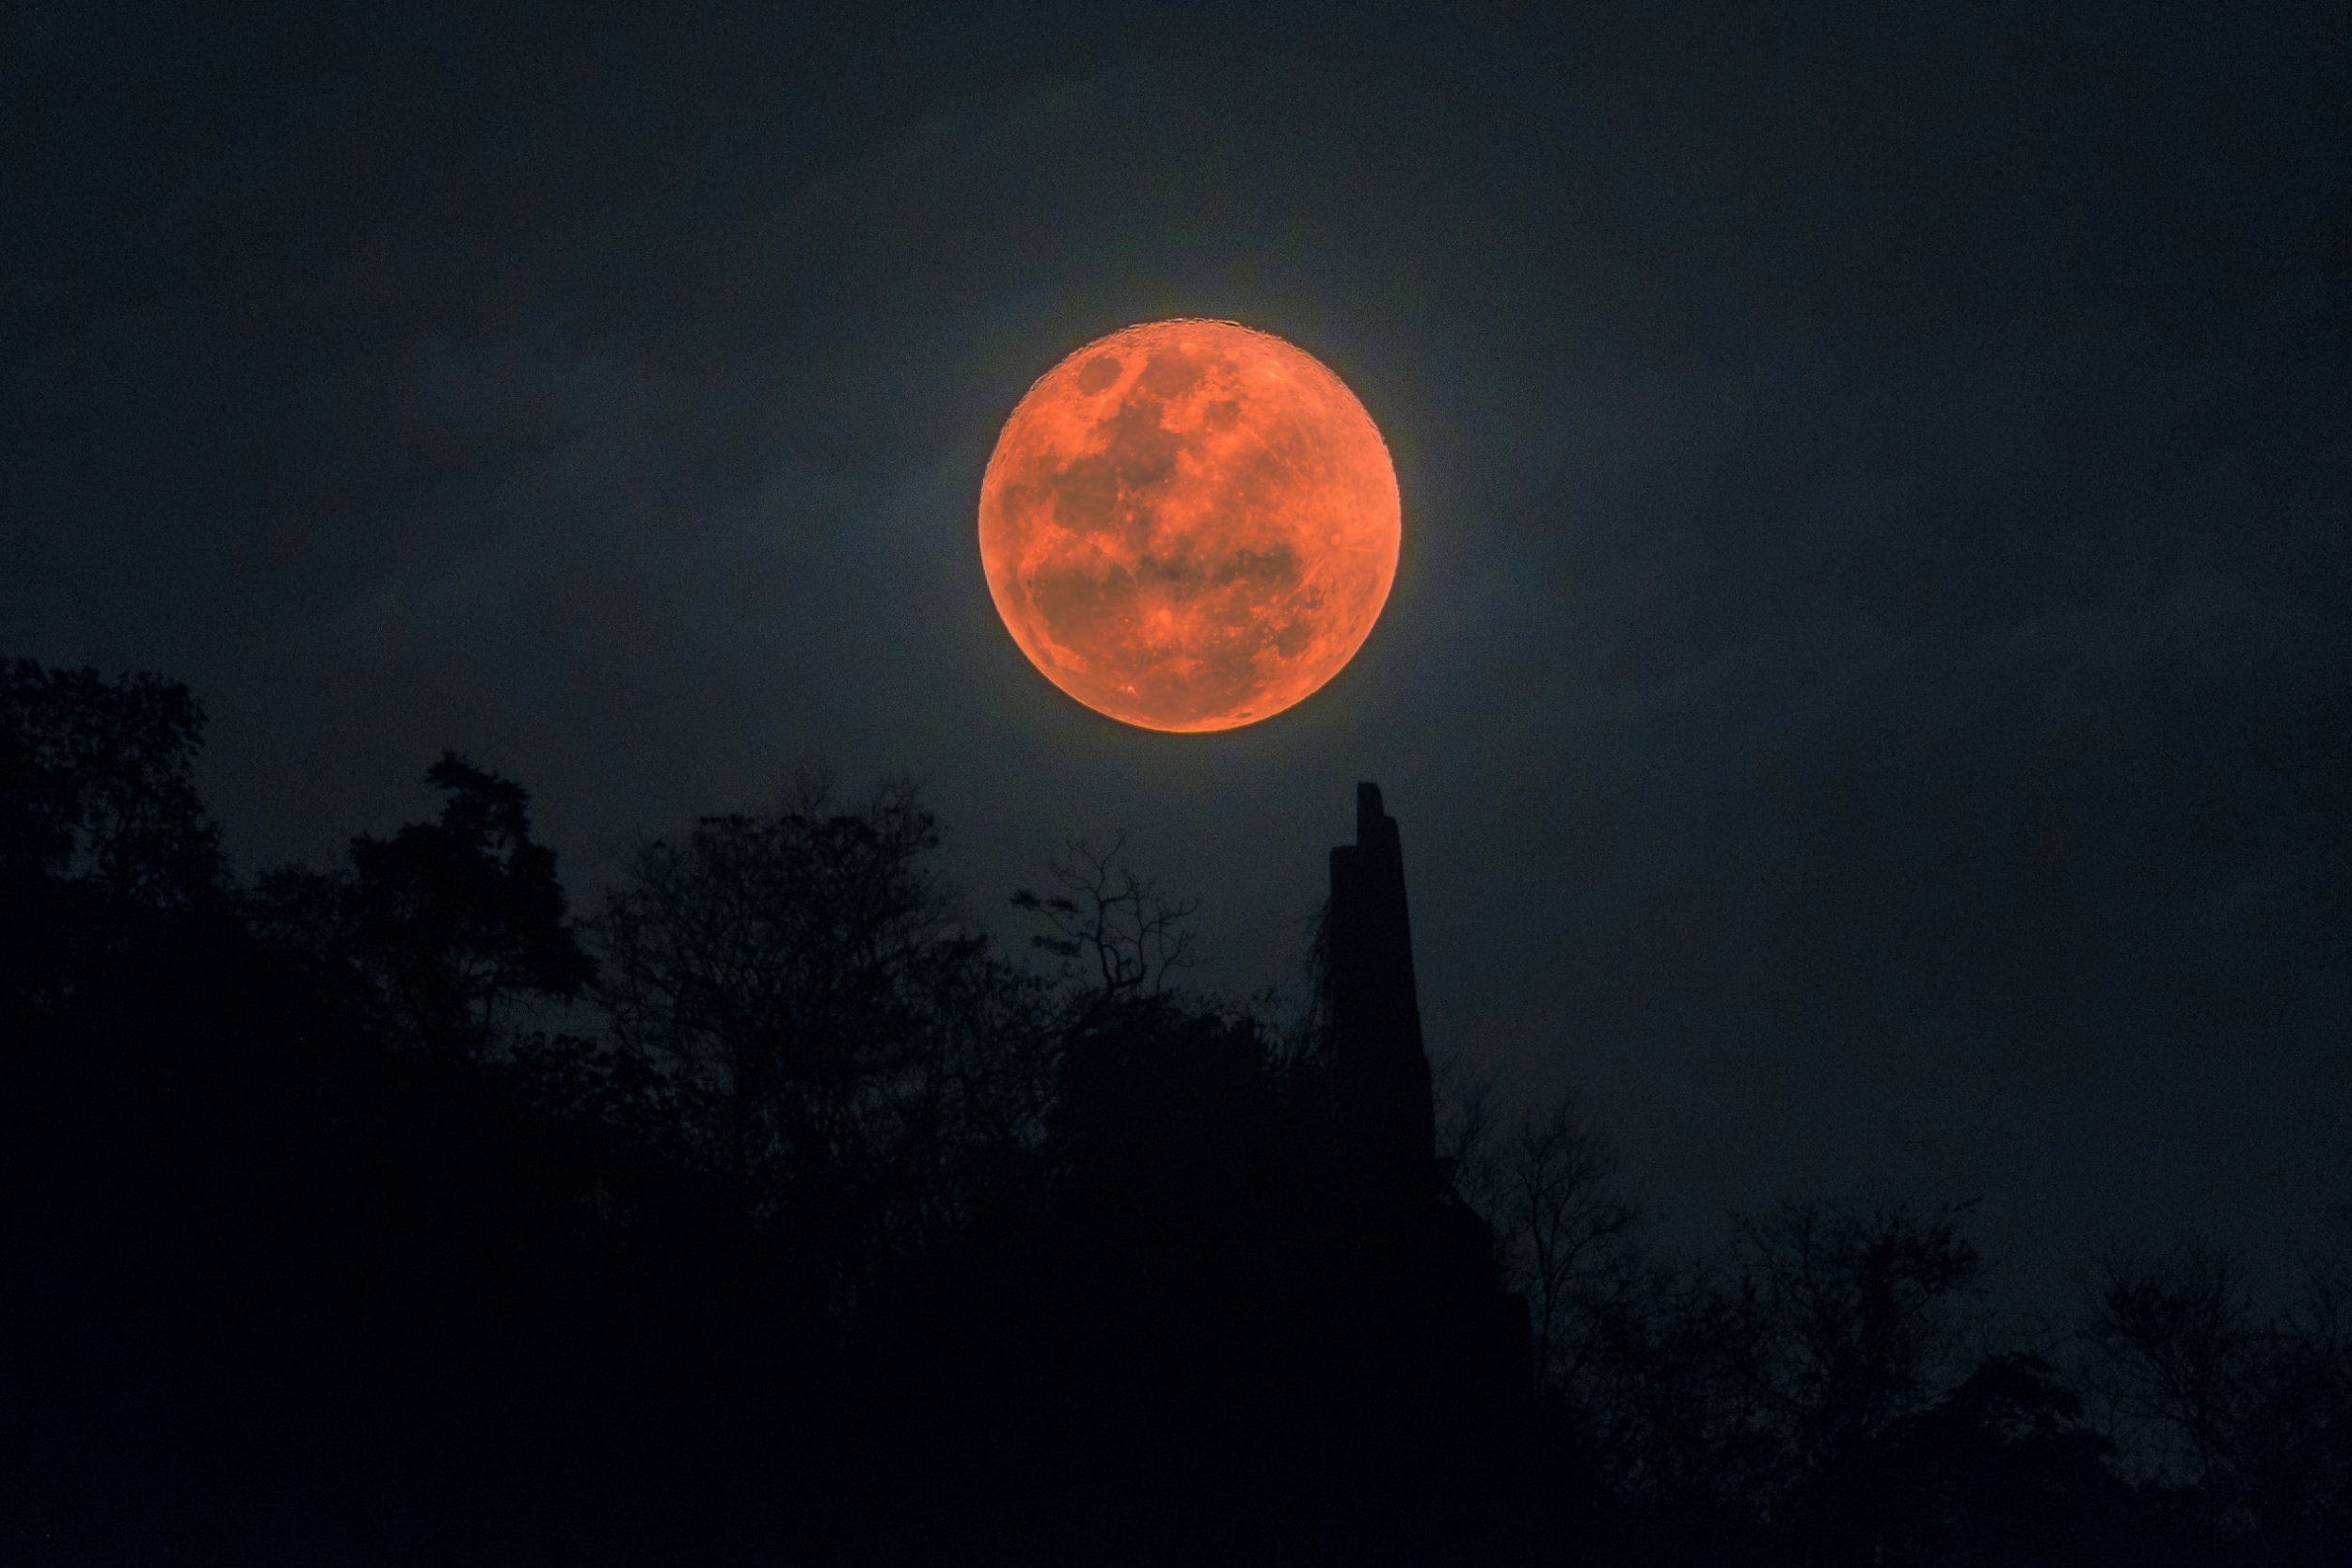 Blood Moon in July set to be the longest total lunar eclipse of the 21st century